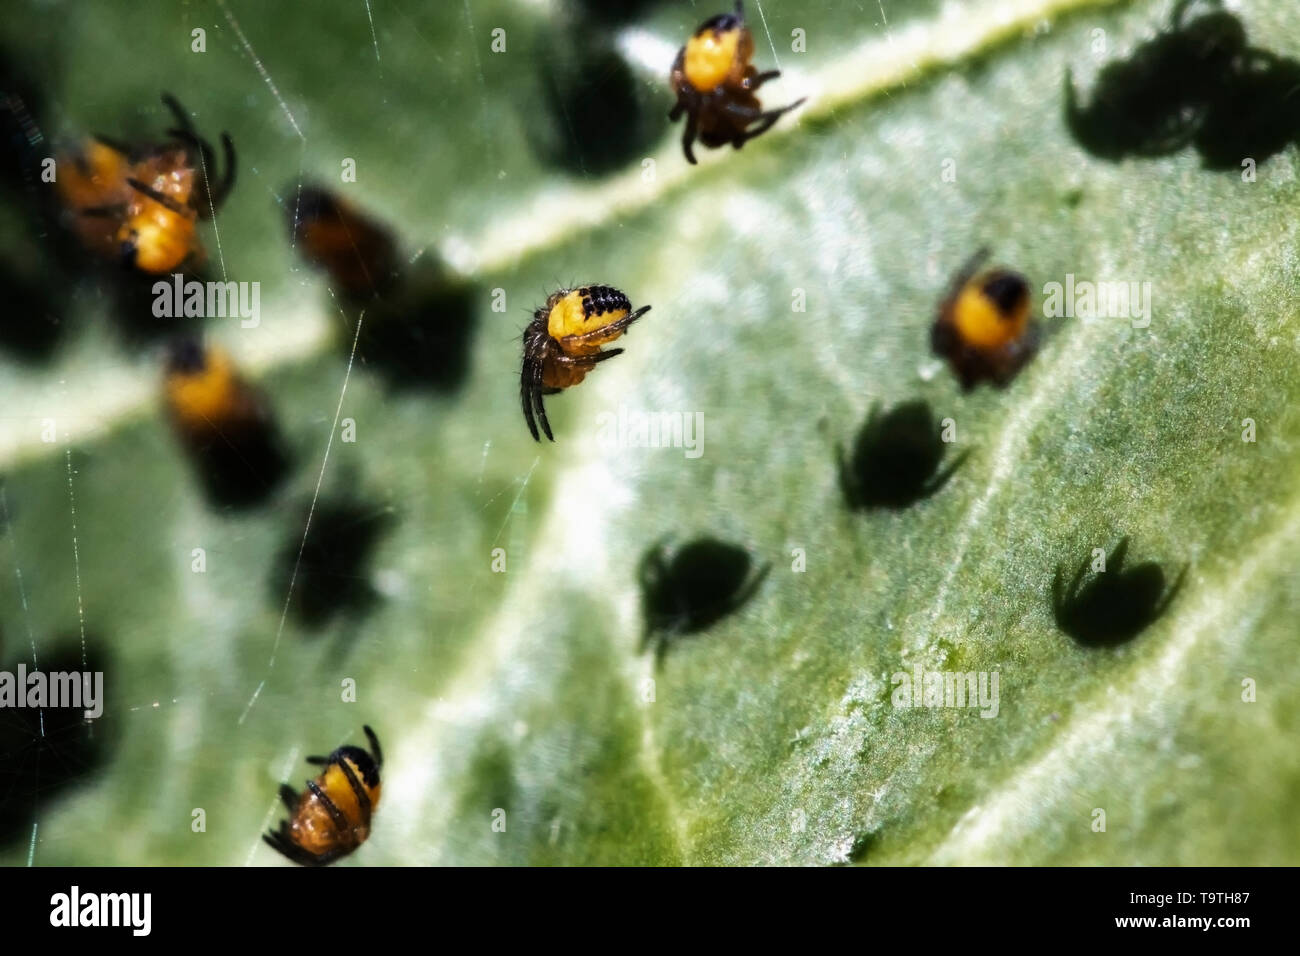 Juvenile orb-weaving spiders on a web - Stock Image